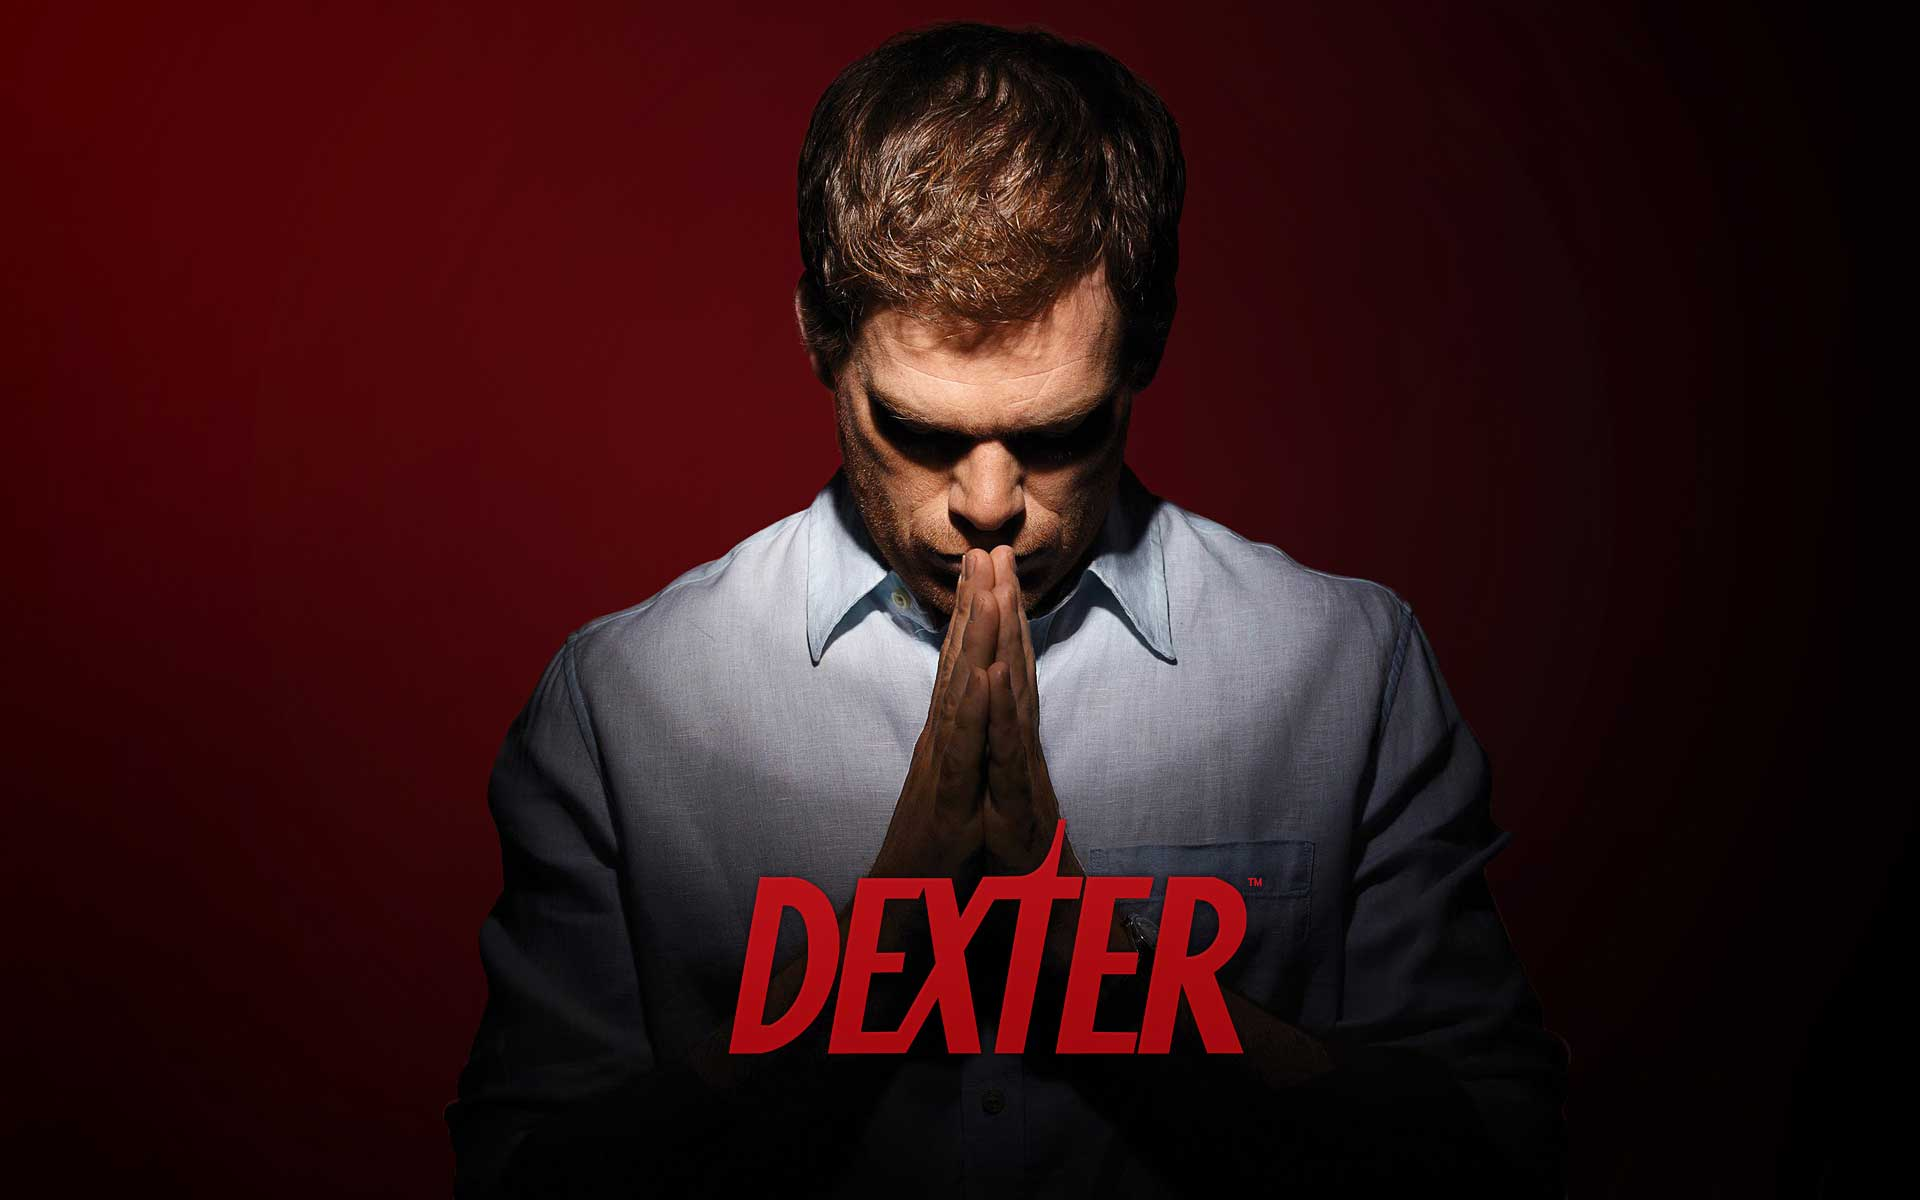 dexter tv show wallpaper 53130